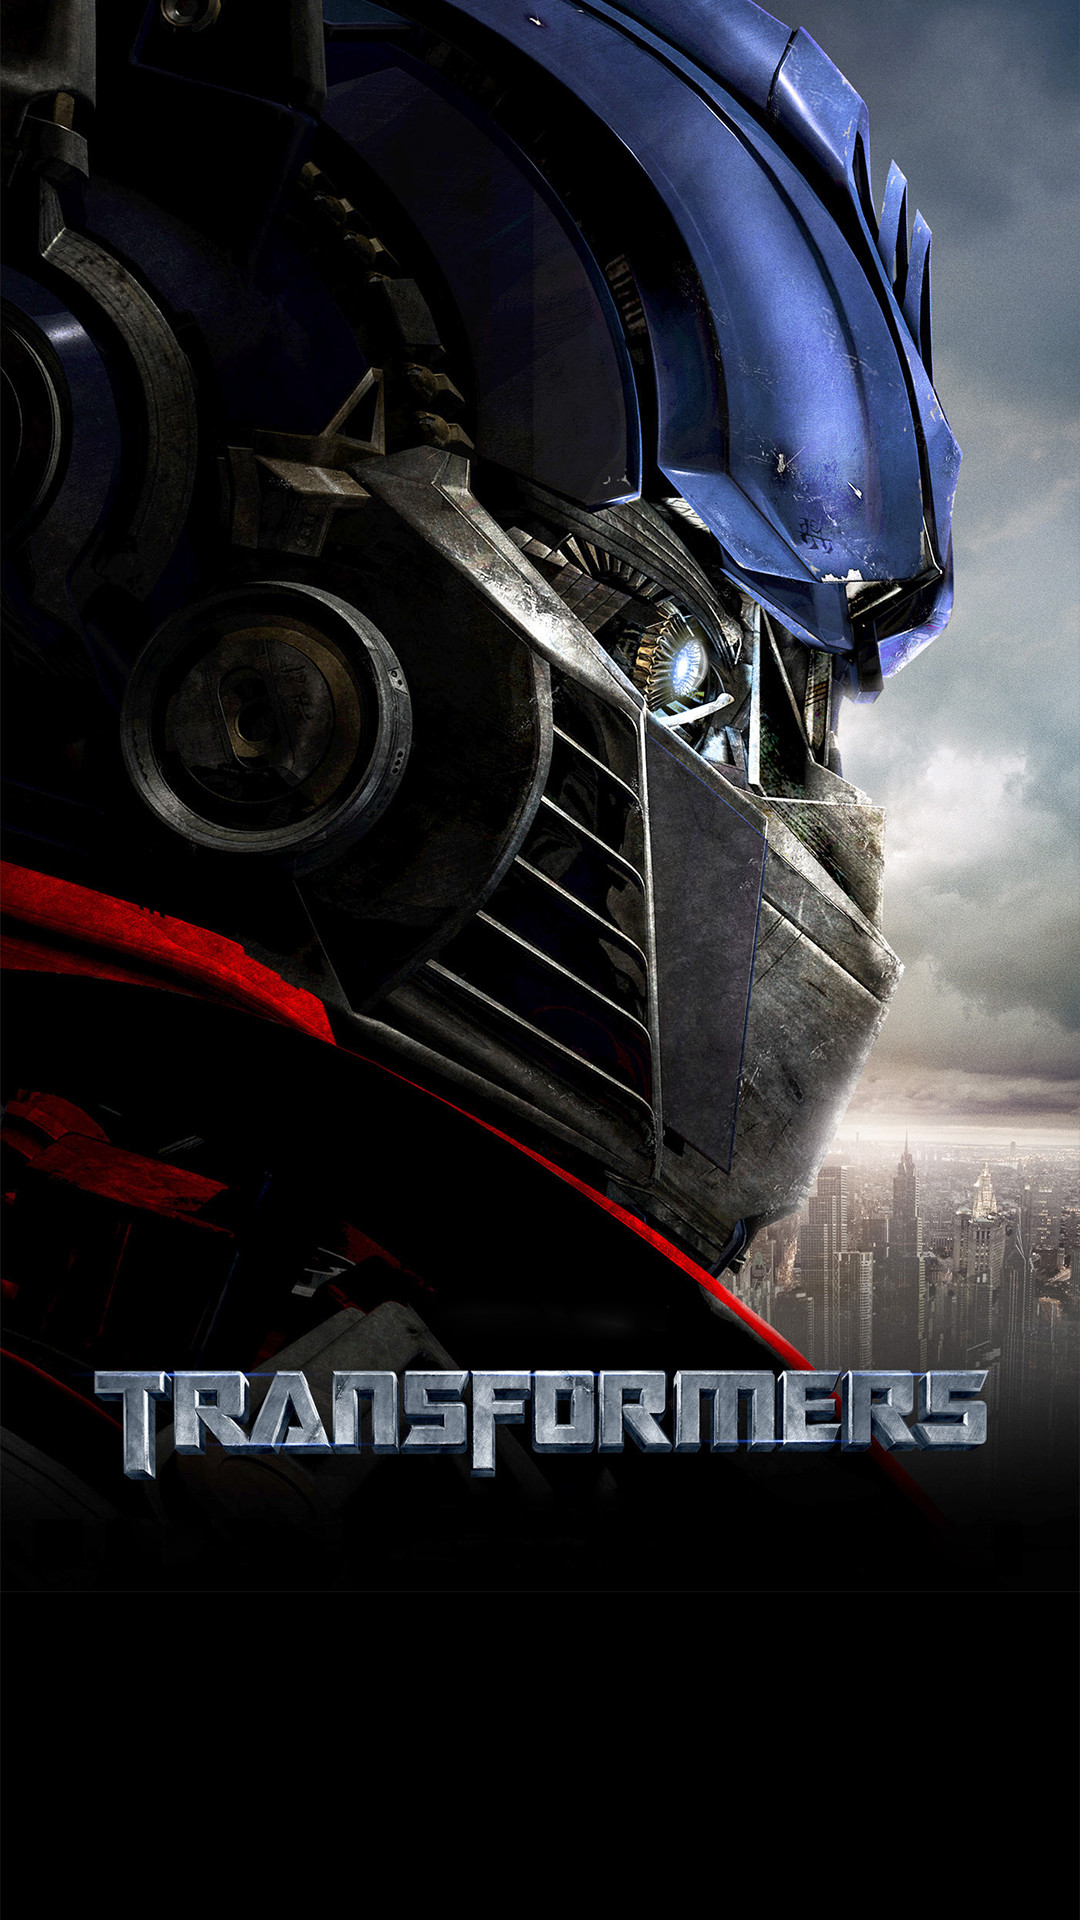 Related HTC HD wallpapers: Optimus Prime Transformers